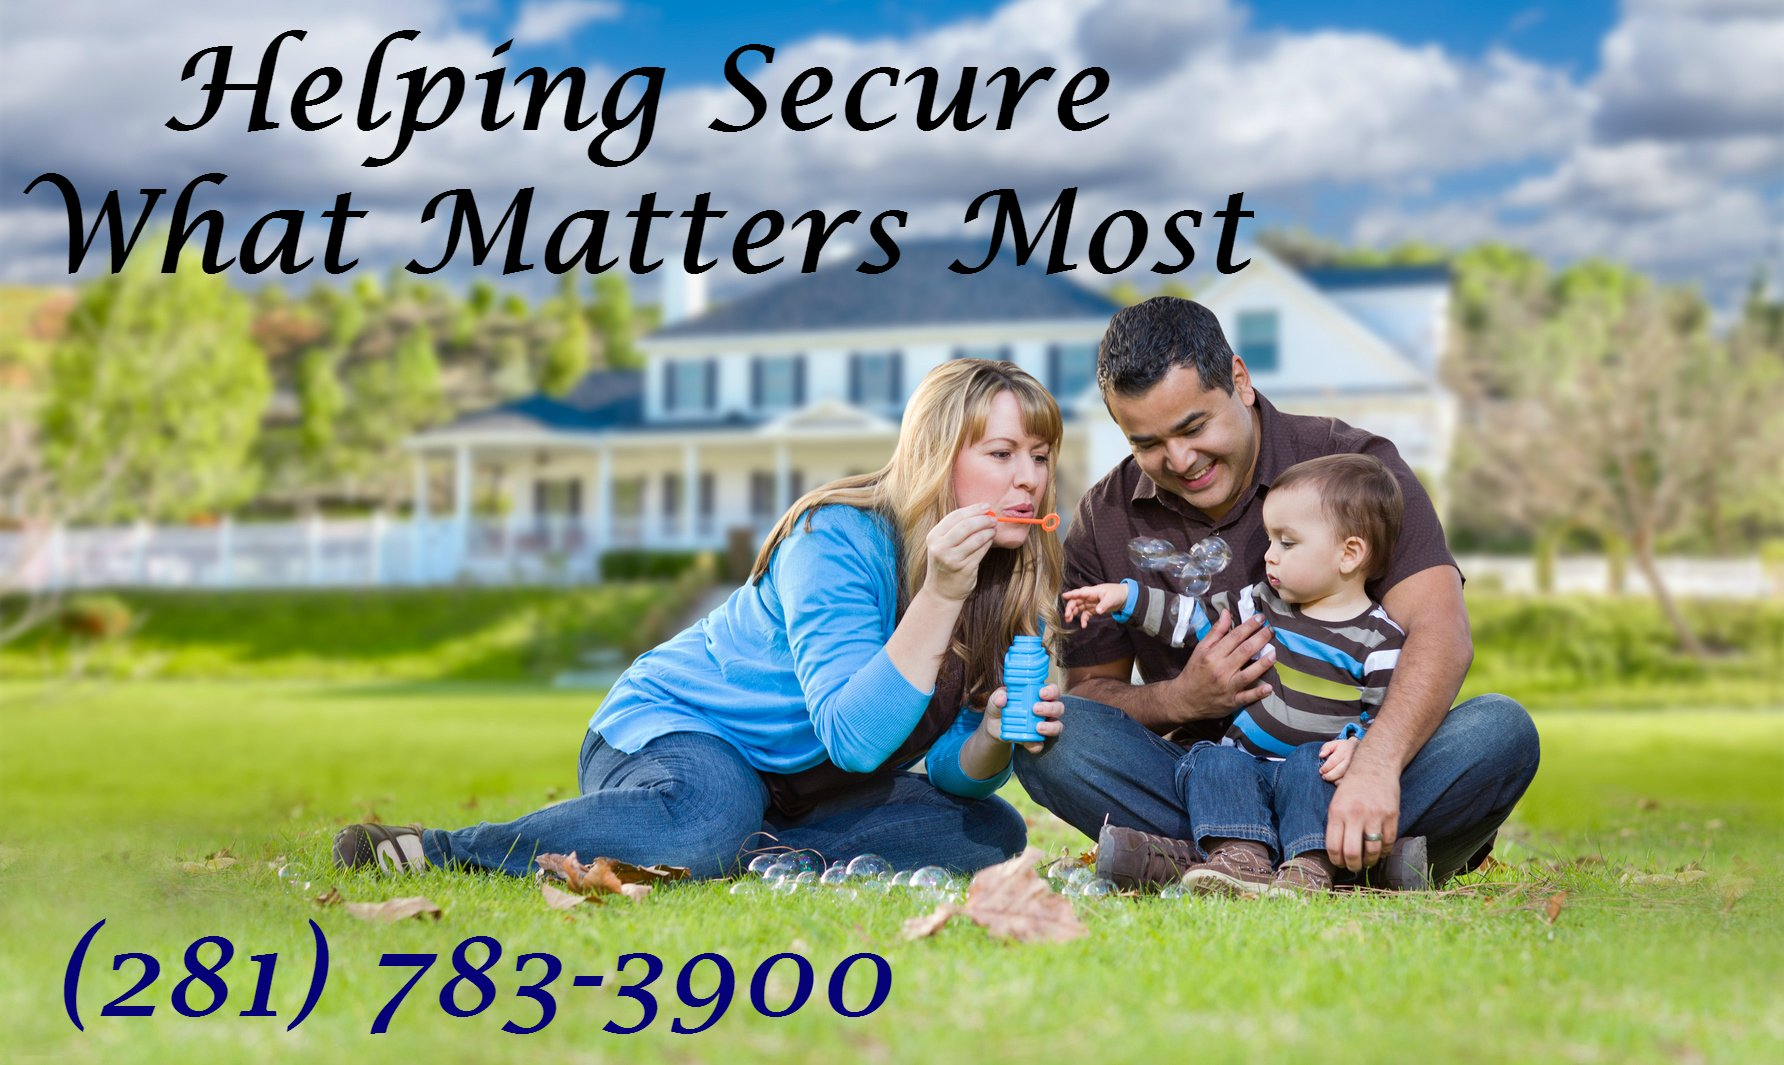 alarm systems in Houston by Big Tex Security